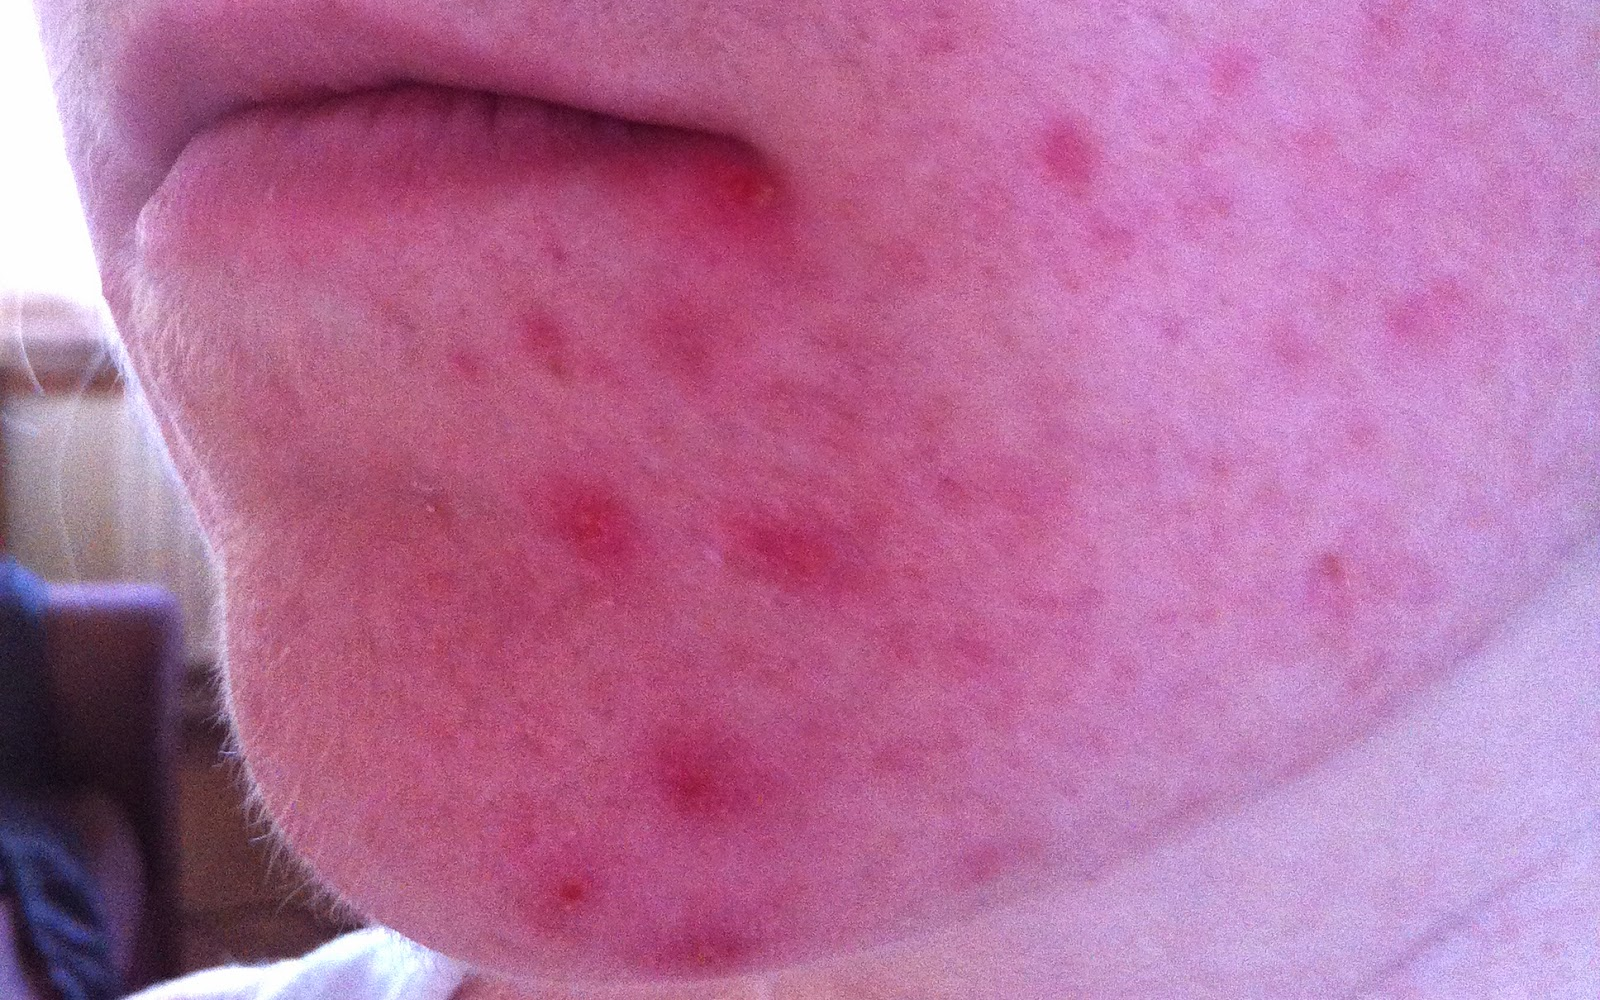 Roaccutane Treatment for Acne/Spots Review